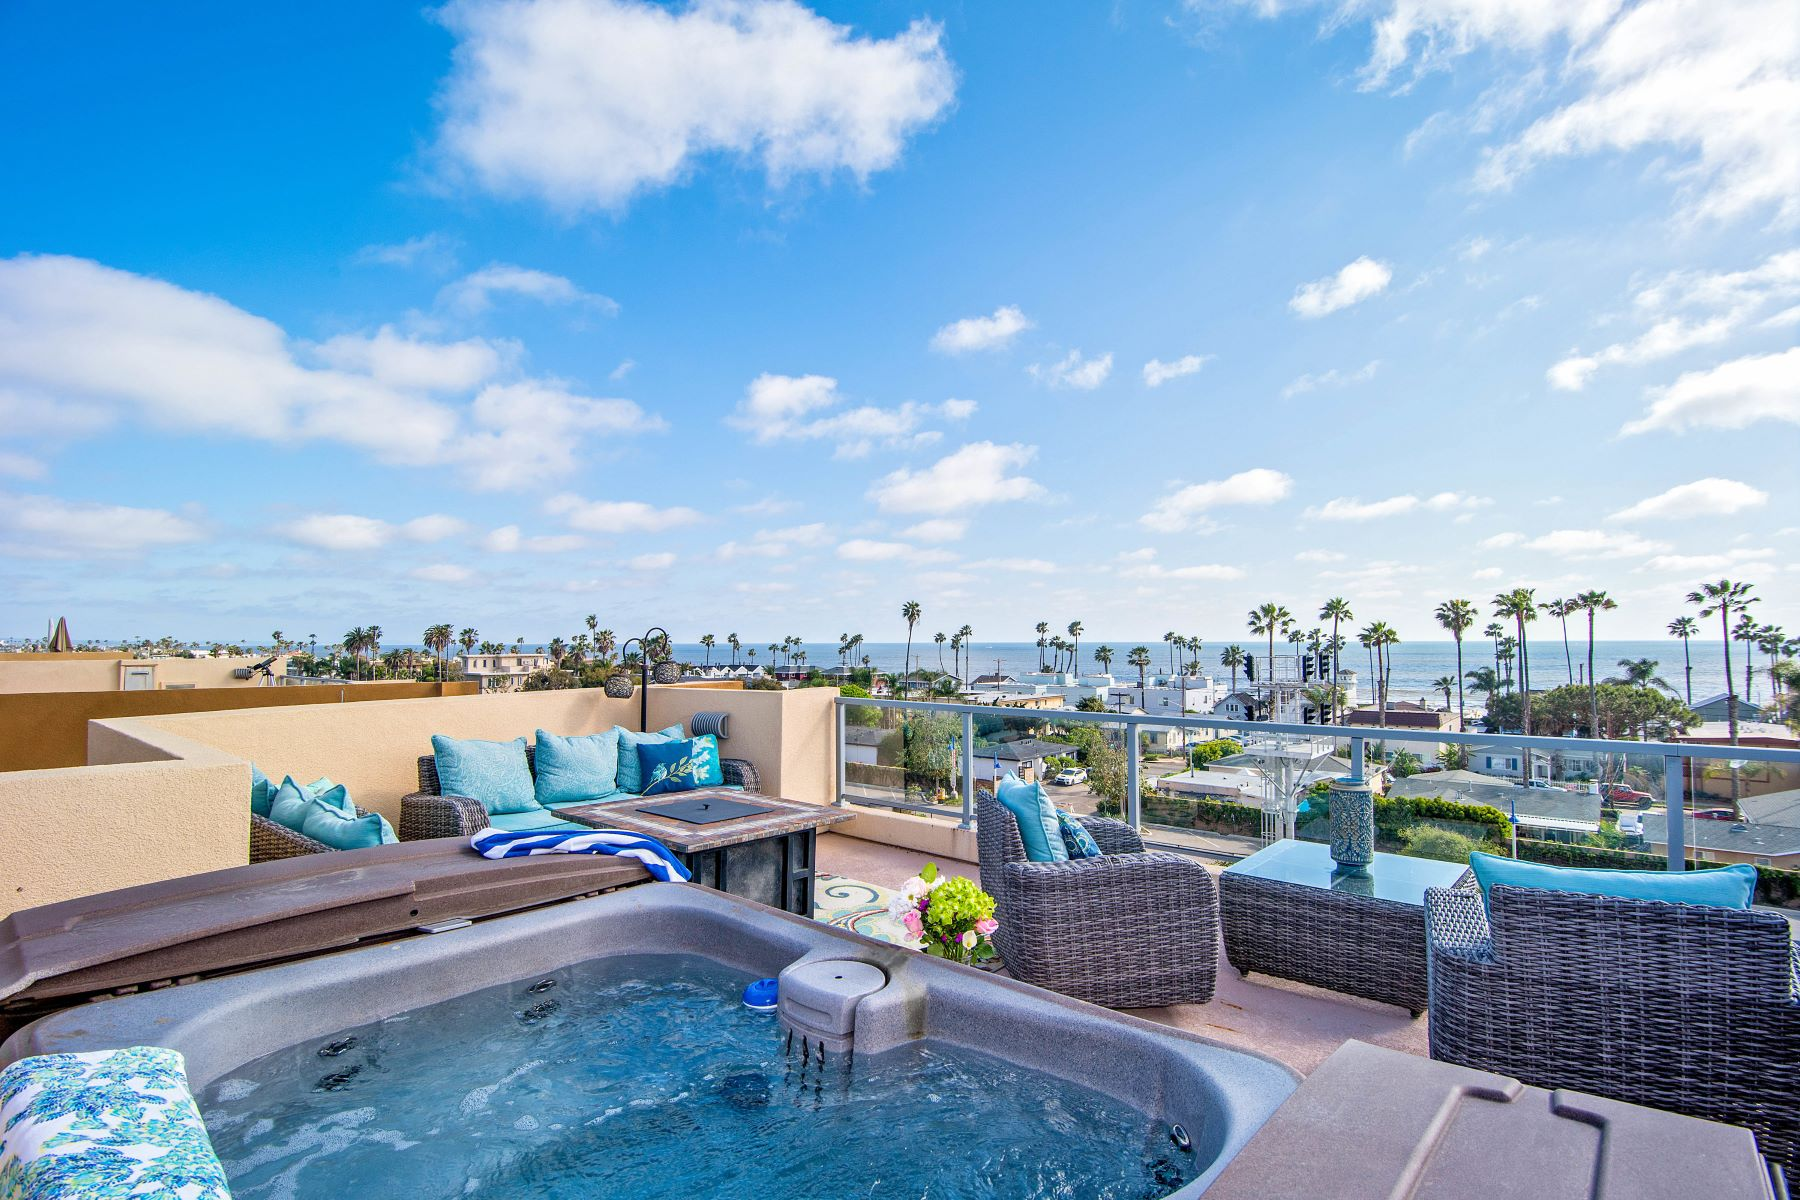 townhouses por un Venta en Coastal Townlofts of Oceanside 465 S Cleveland Street Unit 104 Oceanside, California 92054 Estados Unidos